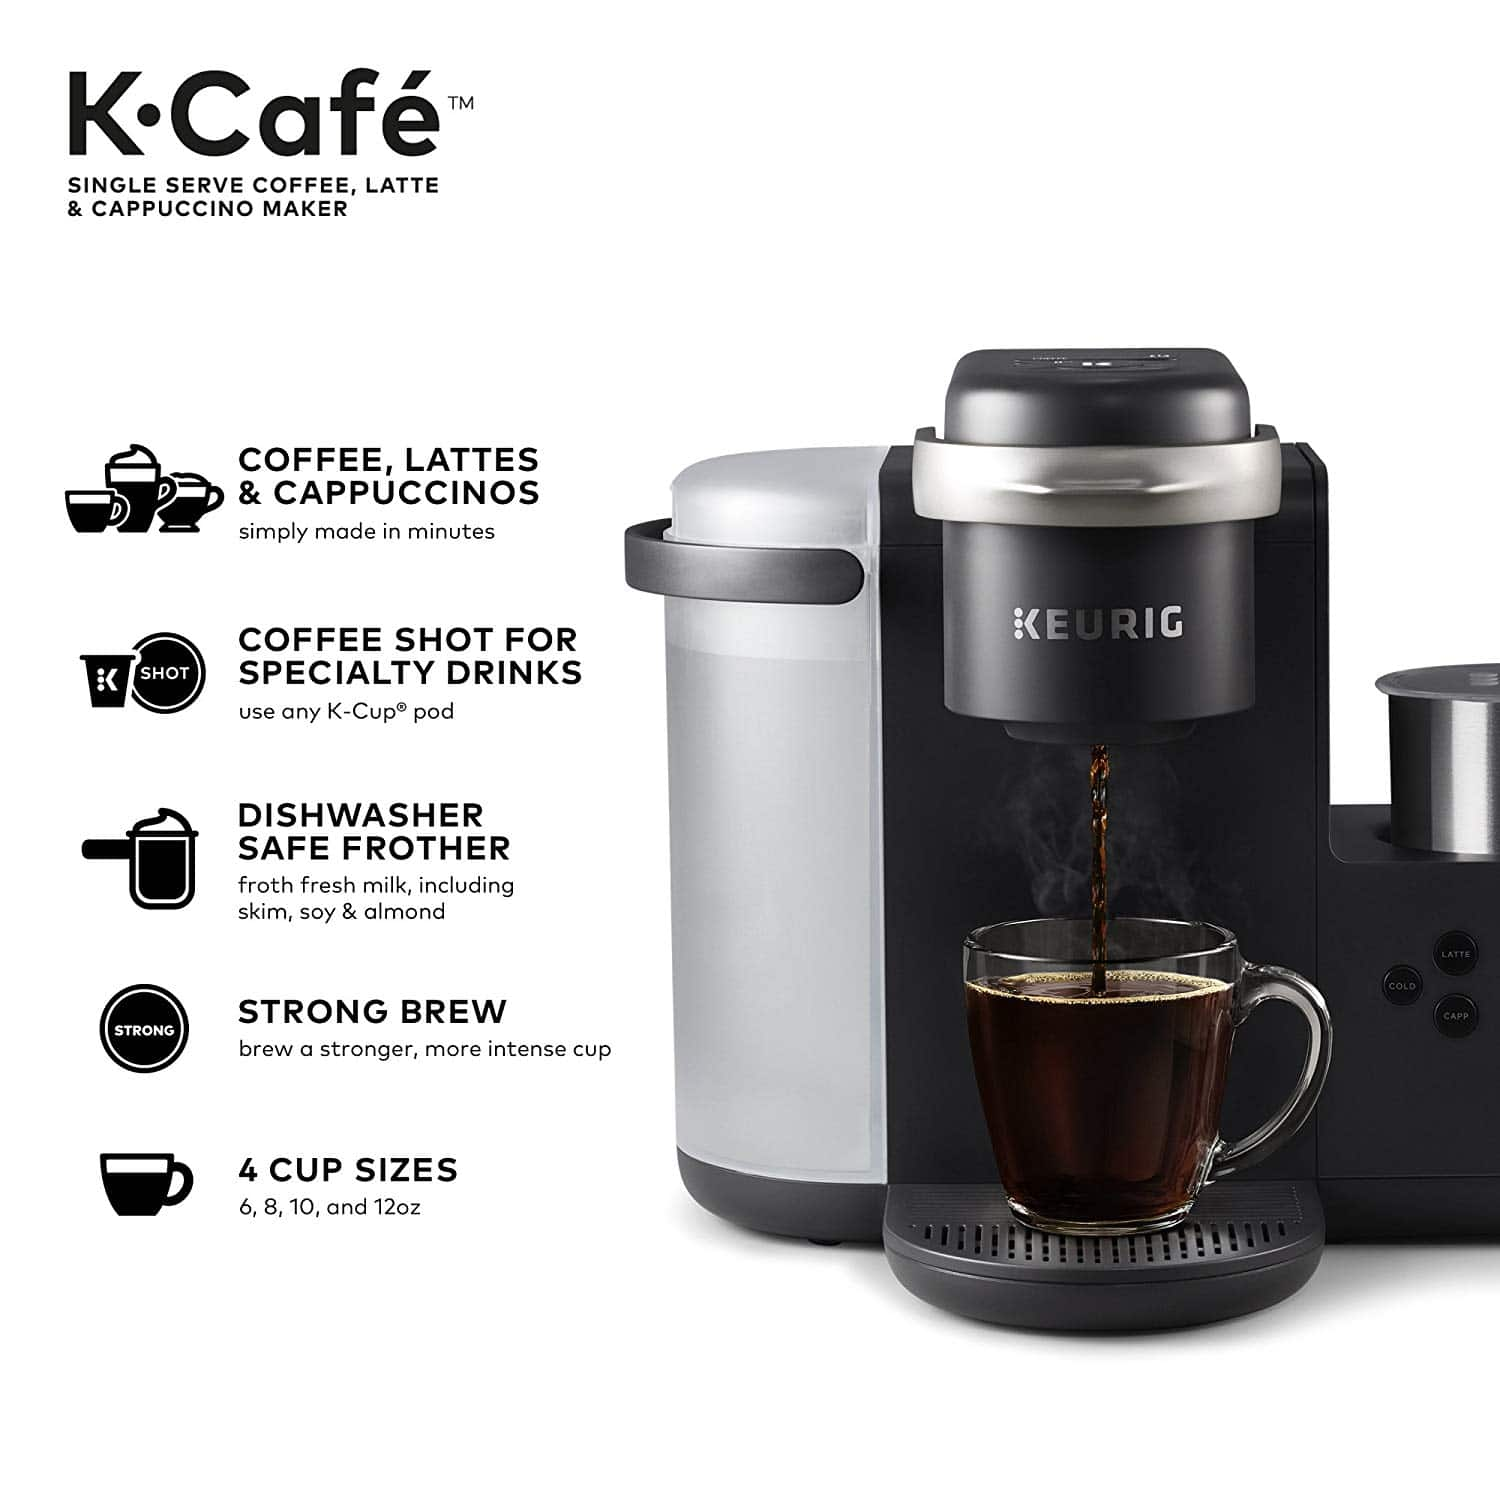 Keurig K-Cafe Single Serve Latte And Cappuccino Coffee